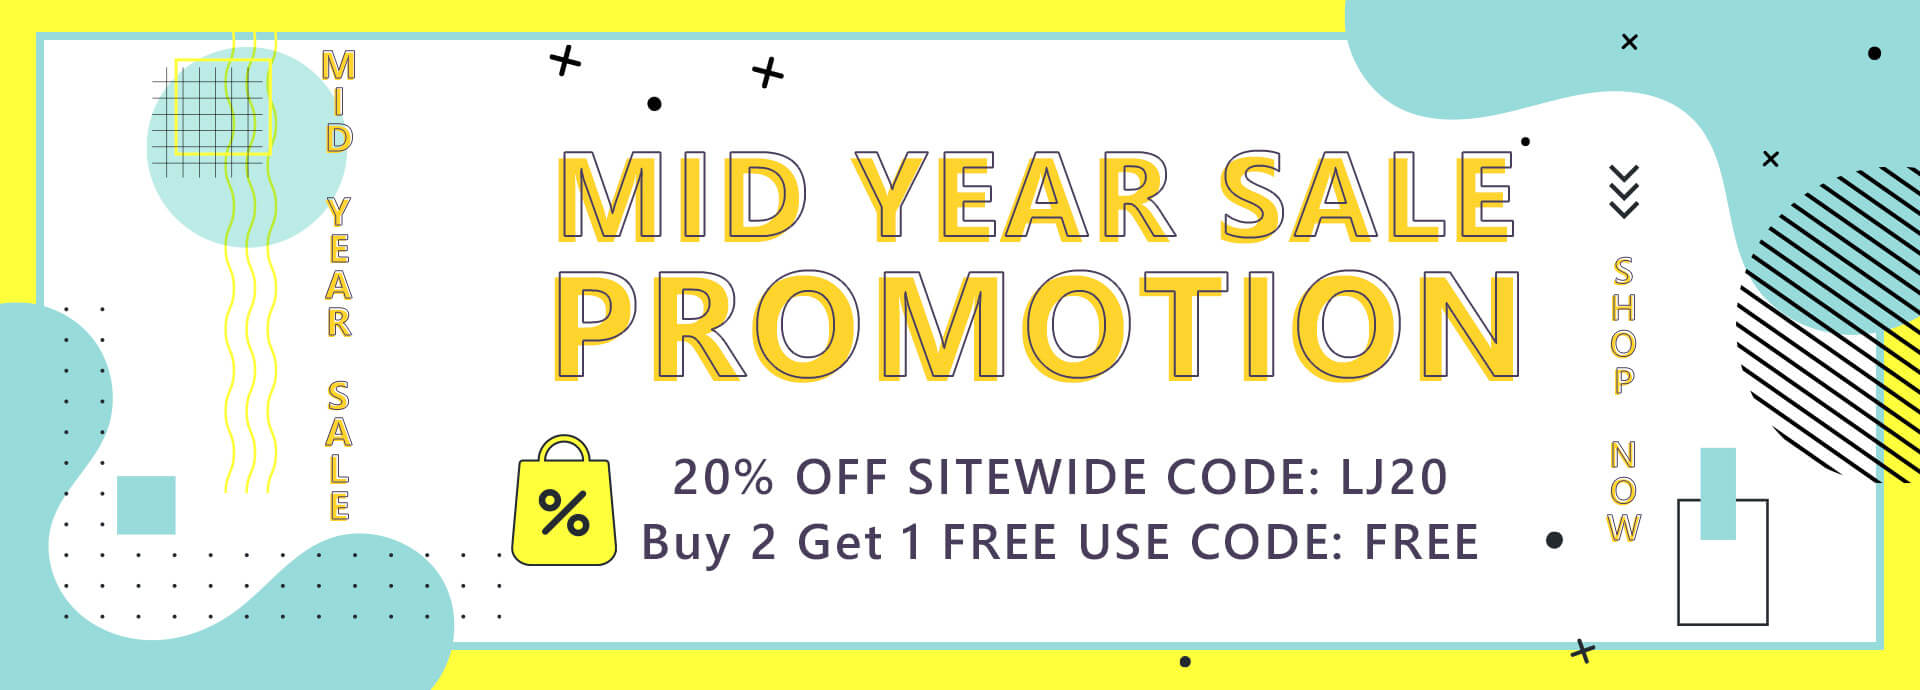 Mid Year Sale